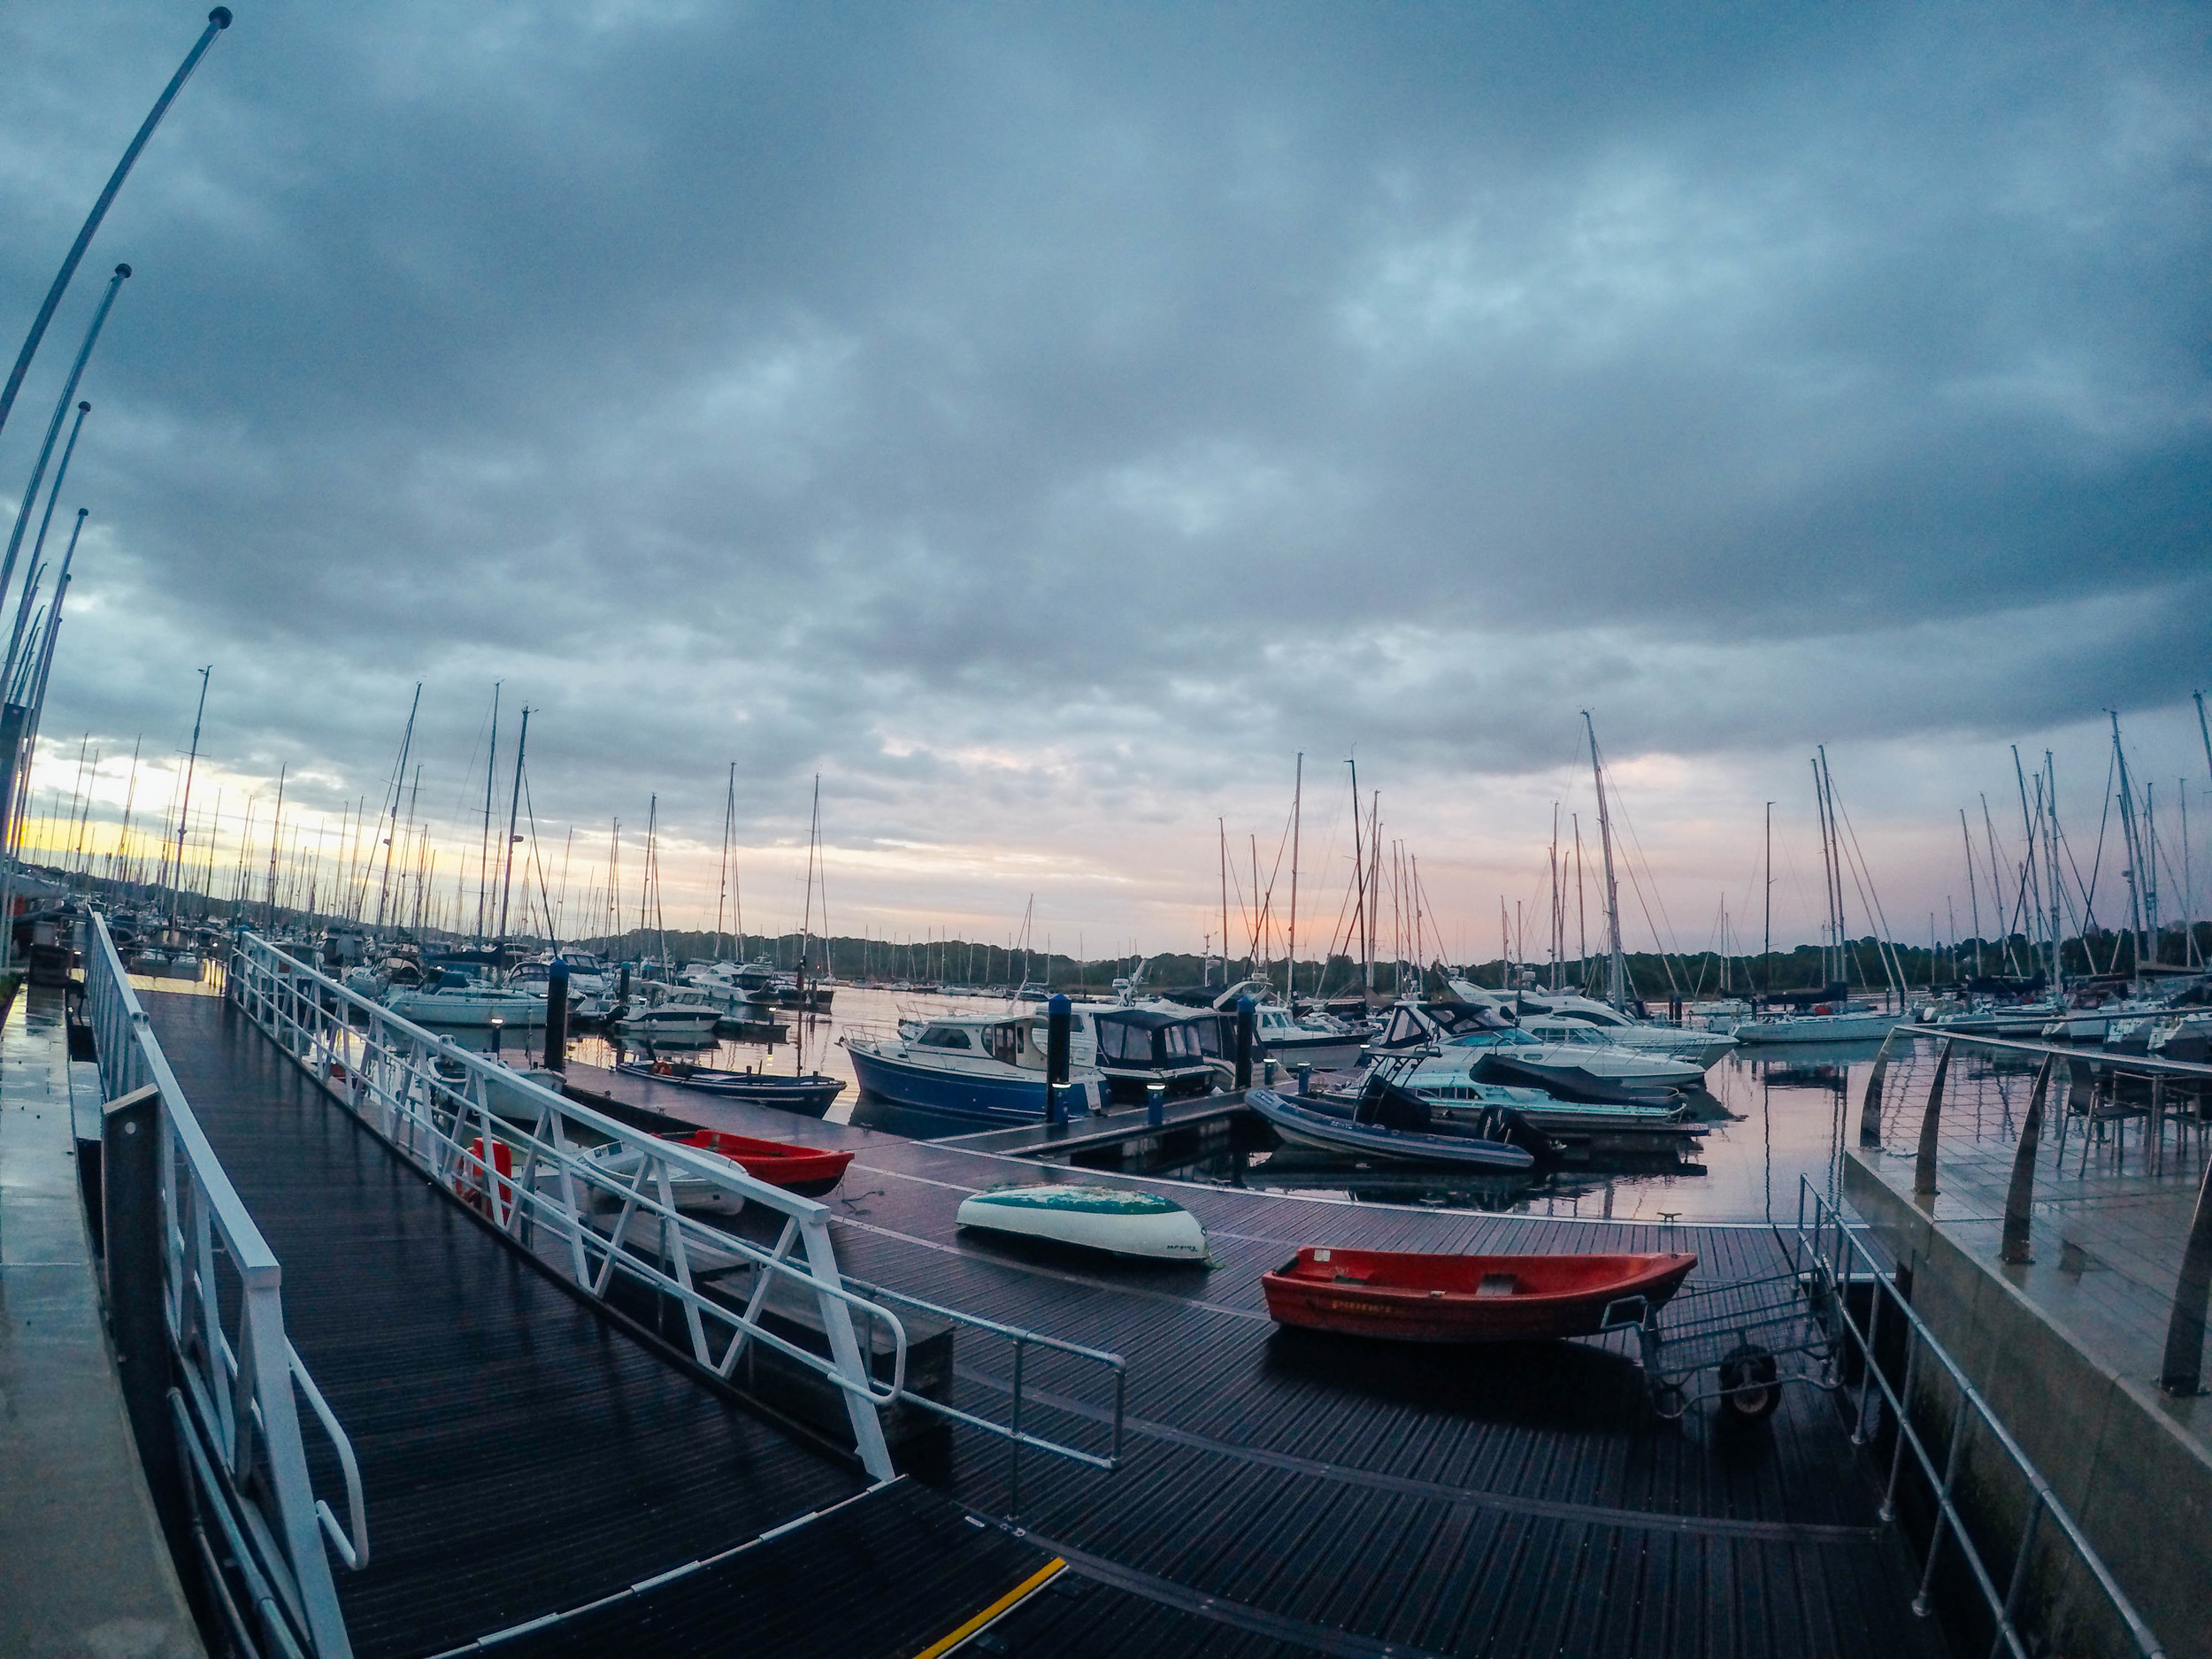 Beautiful sunset over the Royal Southern Yacht Club in Southampton